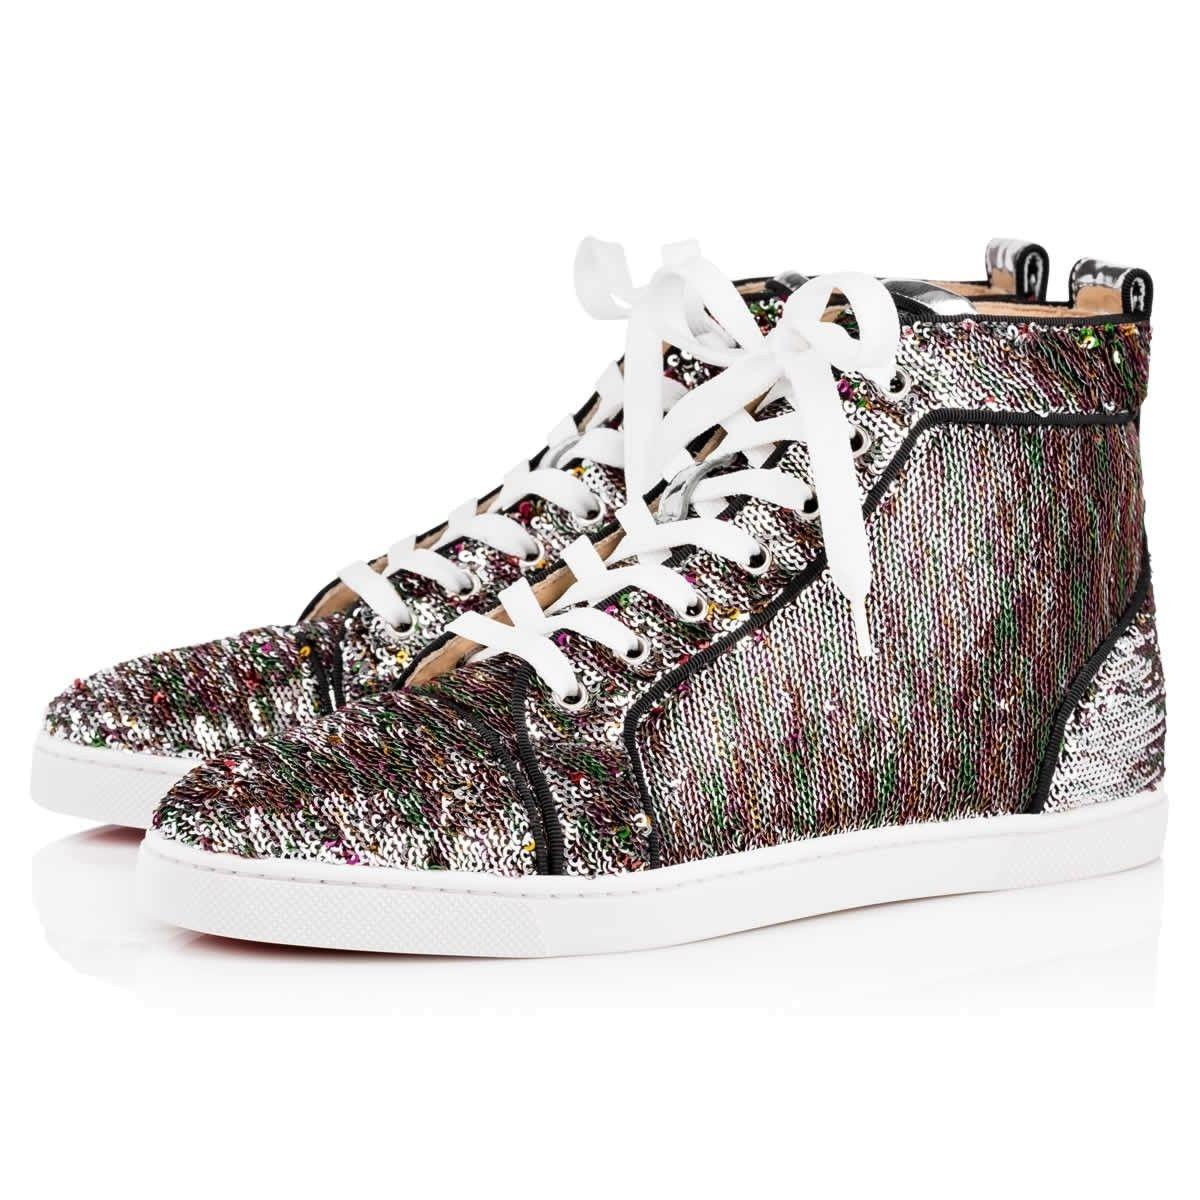 Sequin High Top Sneakers Silver